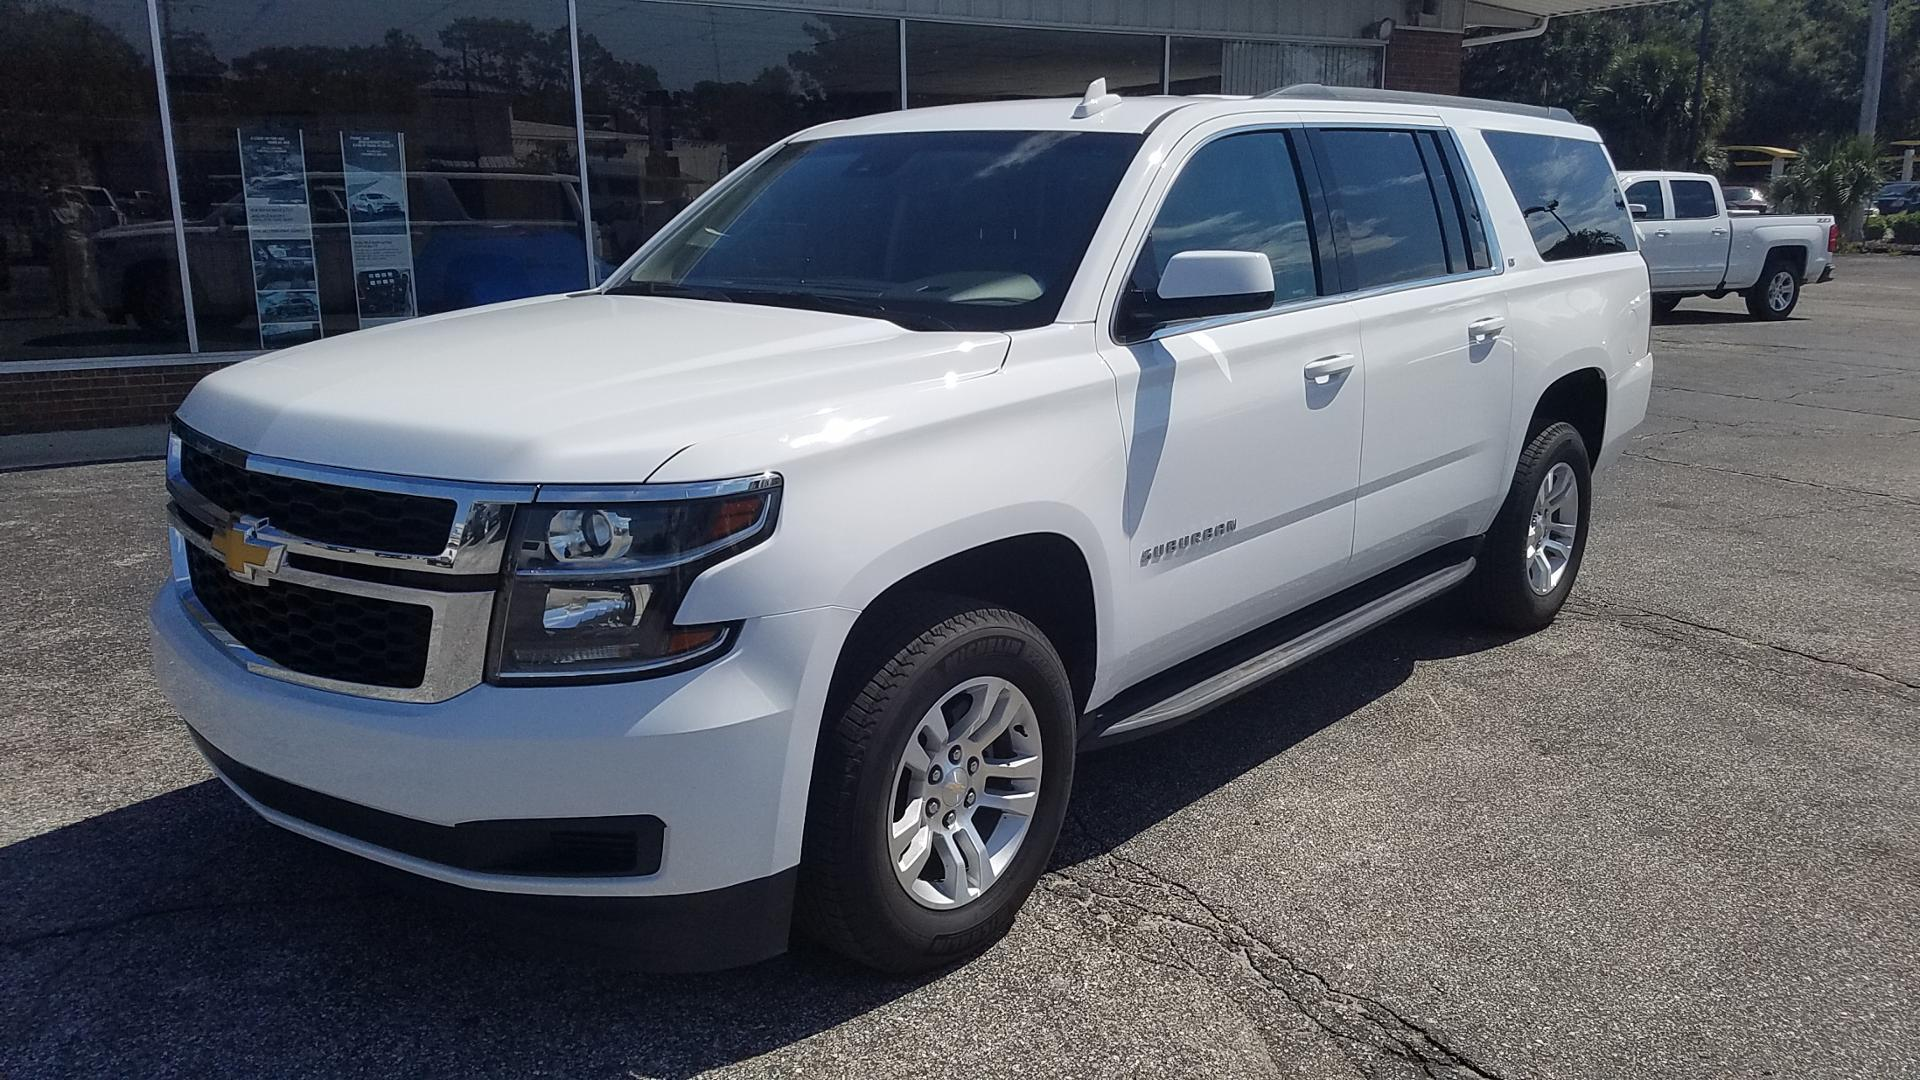 Used Cars for Sale Near Me 1500 or Less Best Of Perry Used Vehicles for Sale